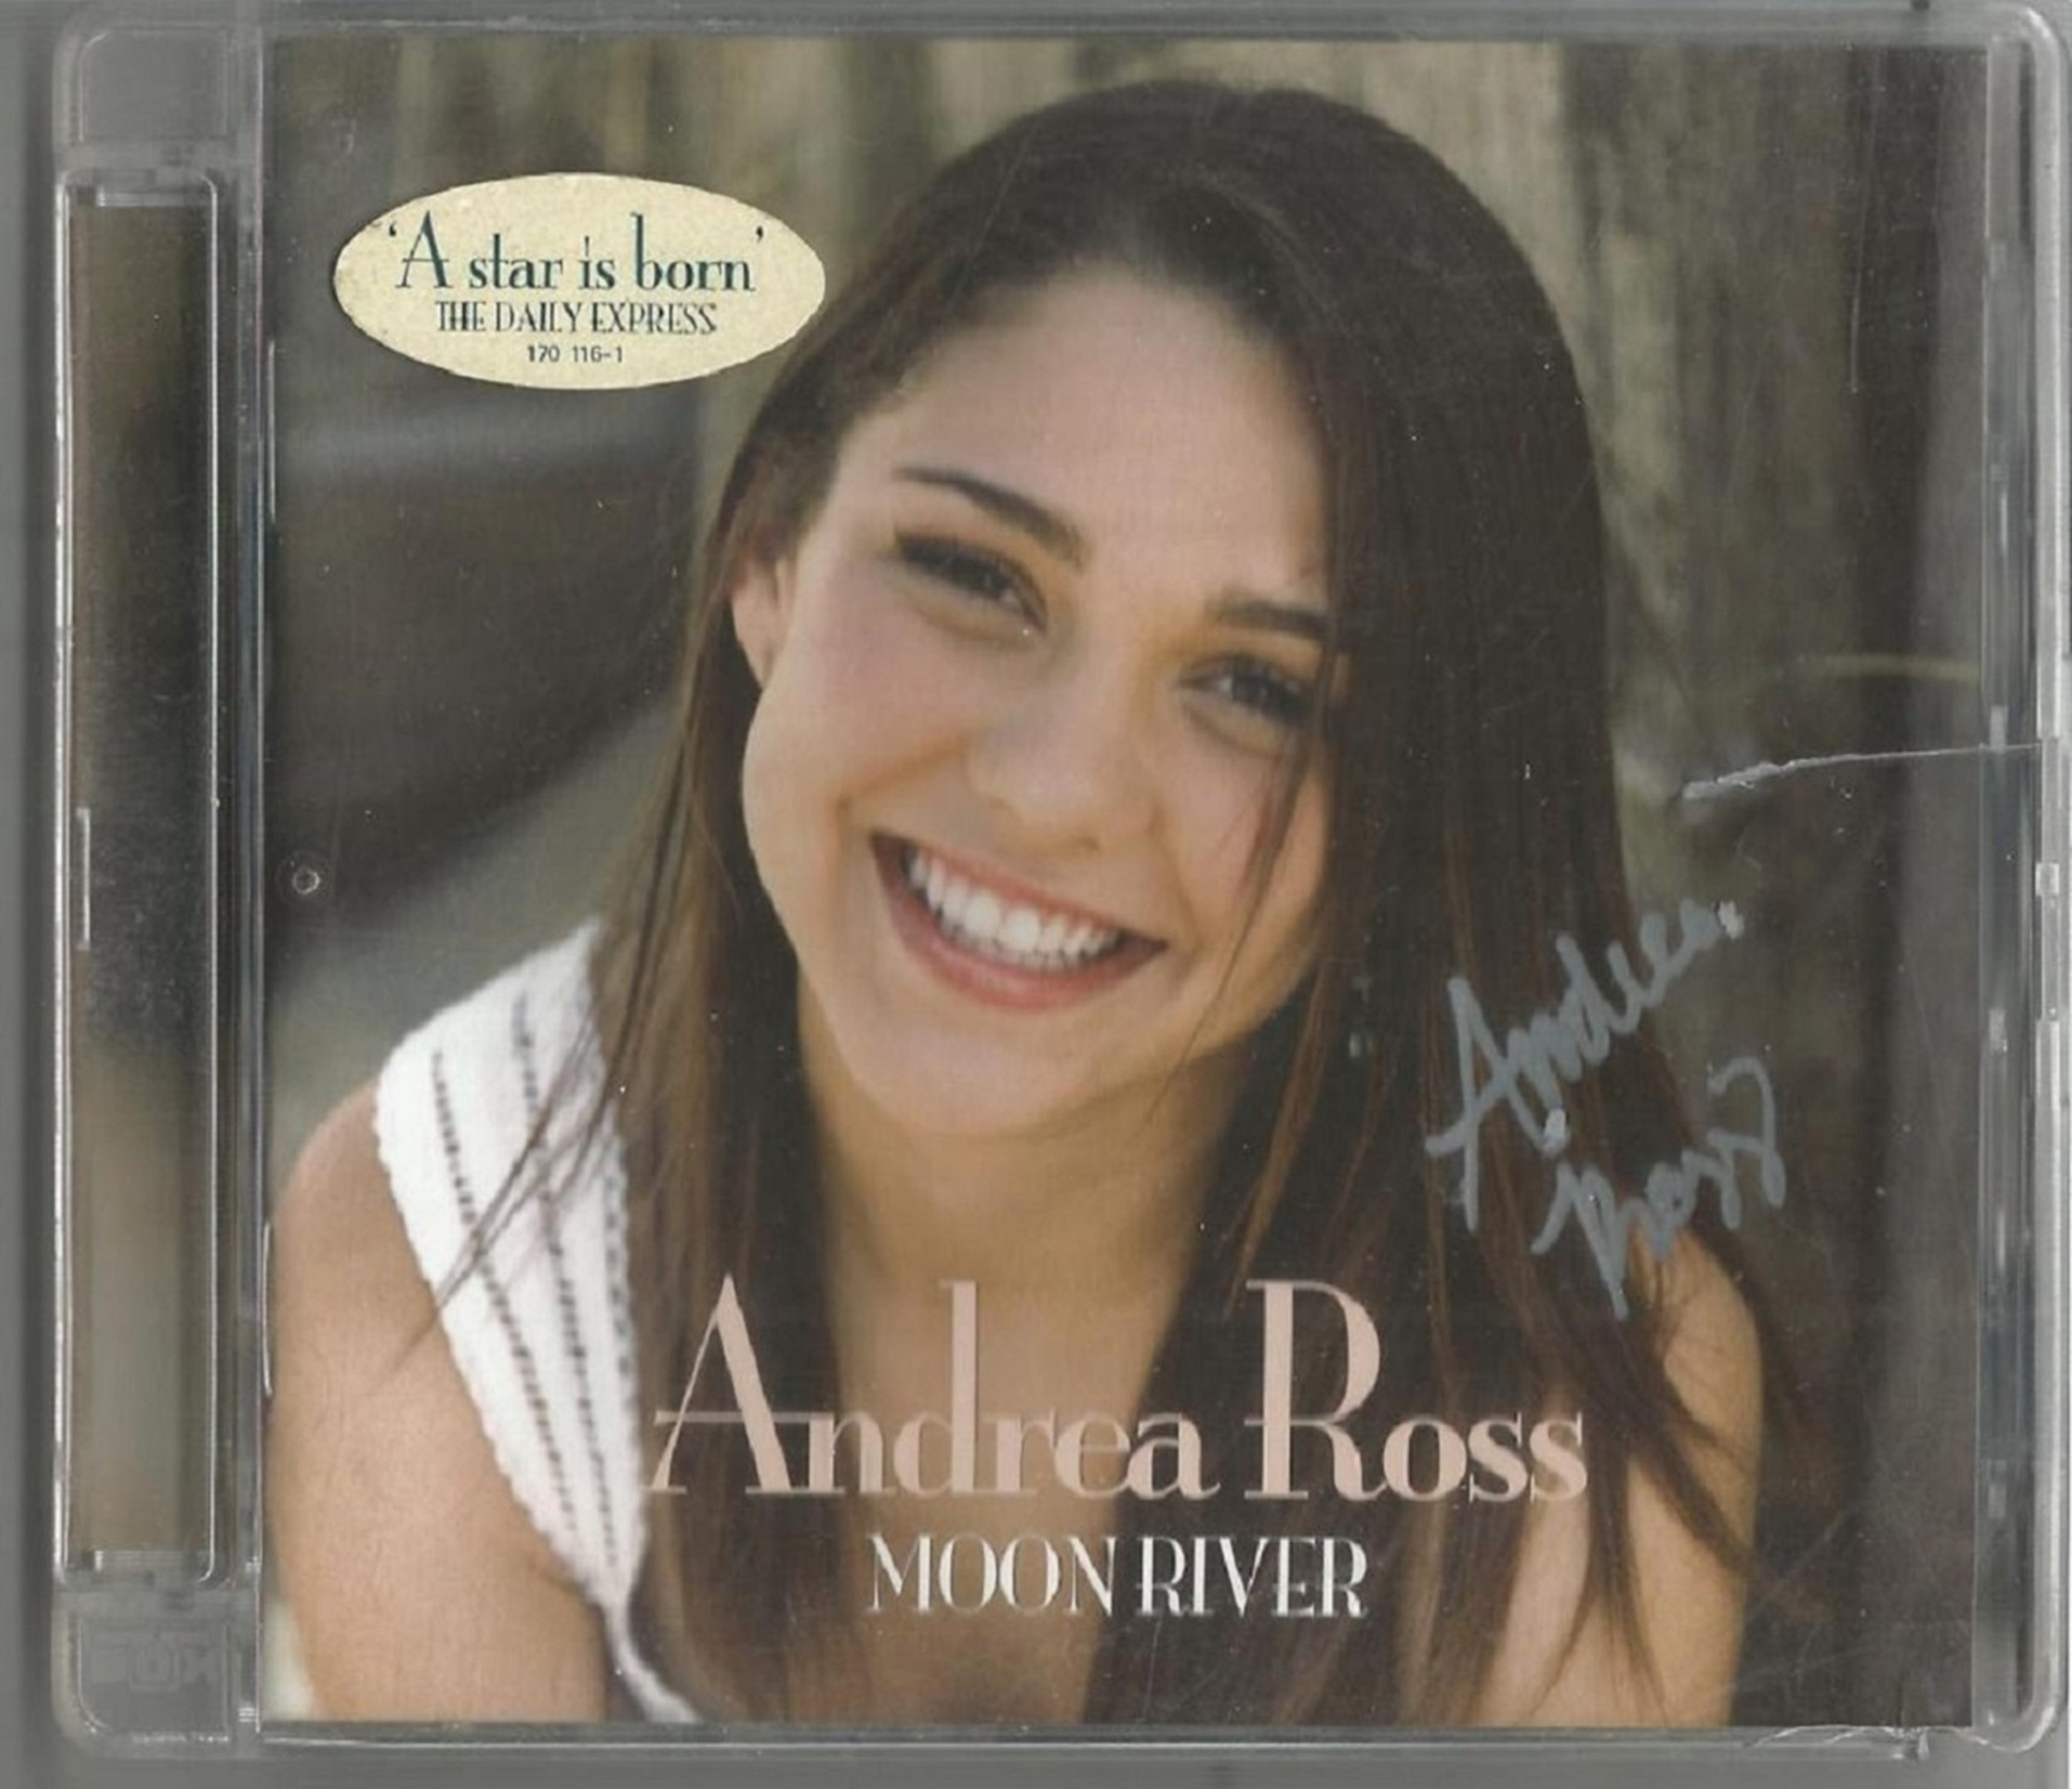 6 Signed CDs Including Andrea Ross Moon River Disc Included, Foley and Hepburn Con Te Partiro Disc - Image 6 of 6